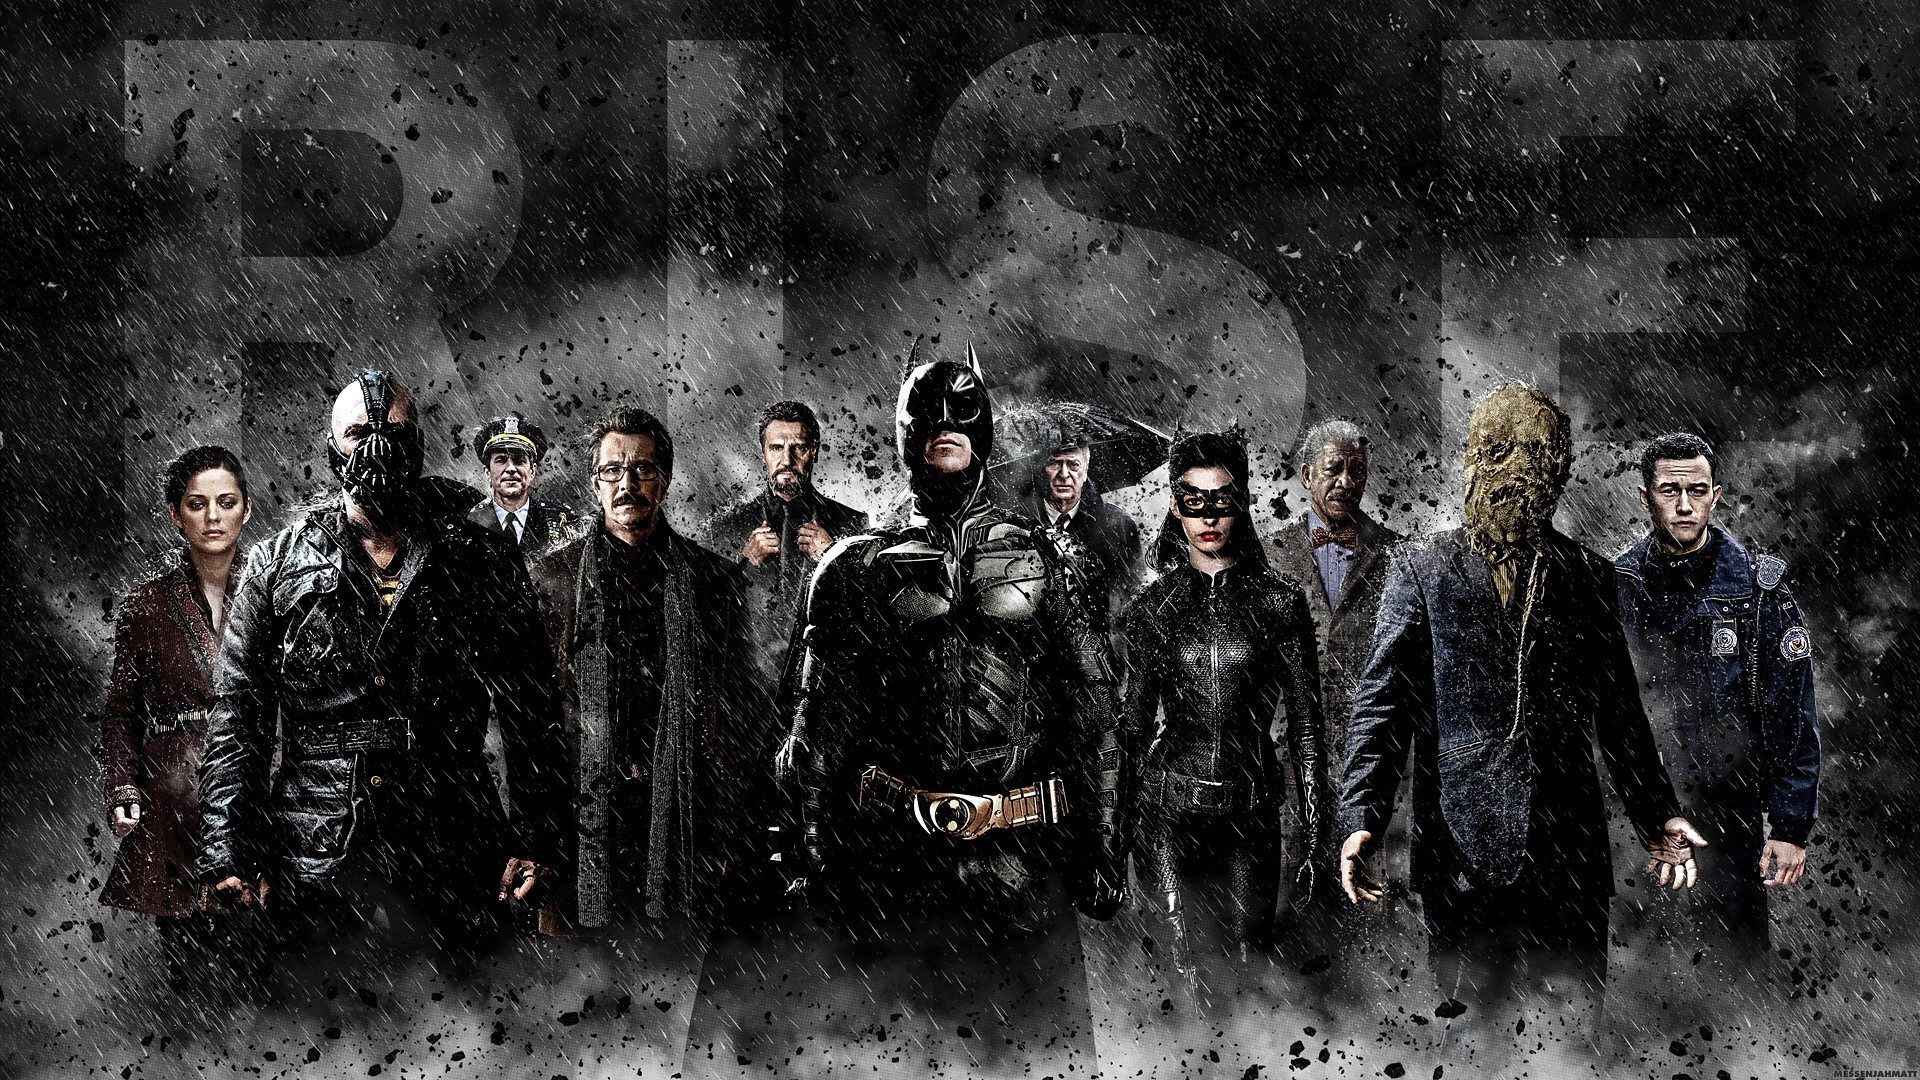 The Dark Knight Rises Fondo De Pantalla Full Hd Id725